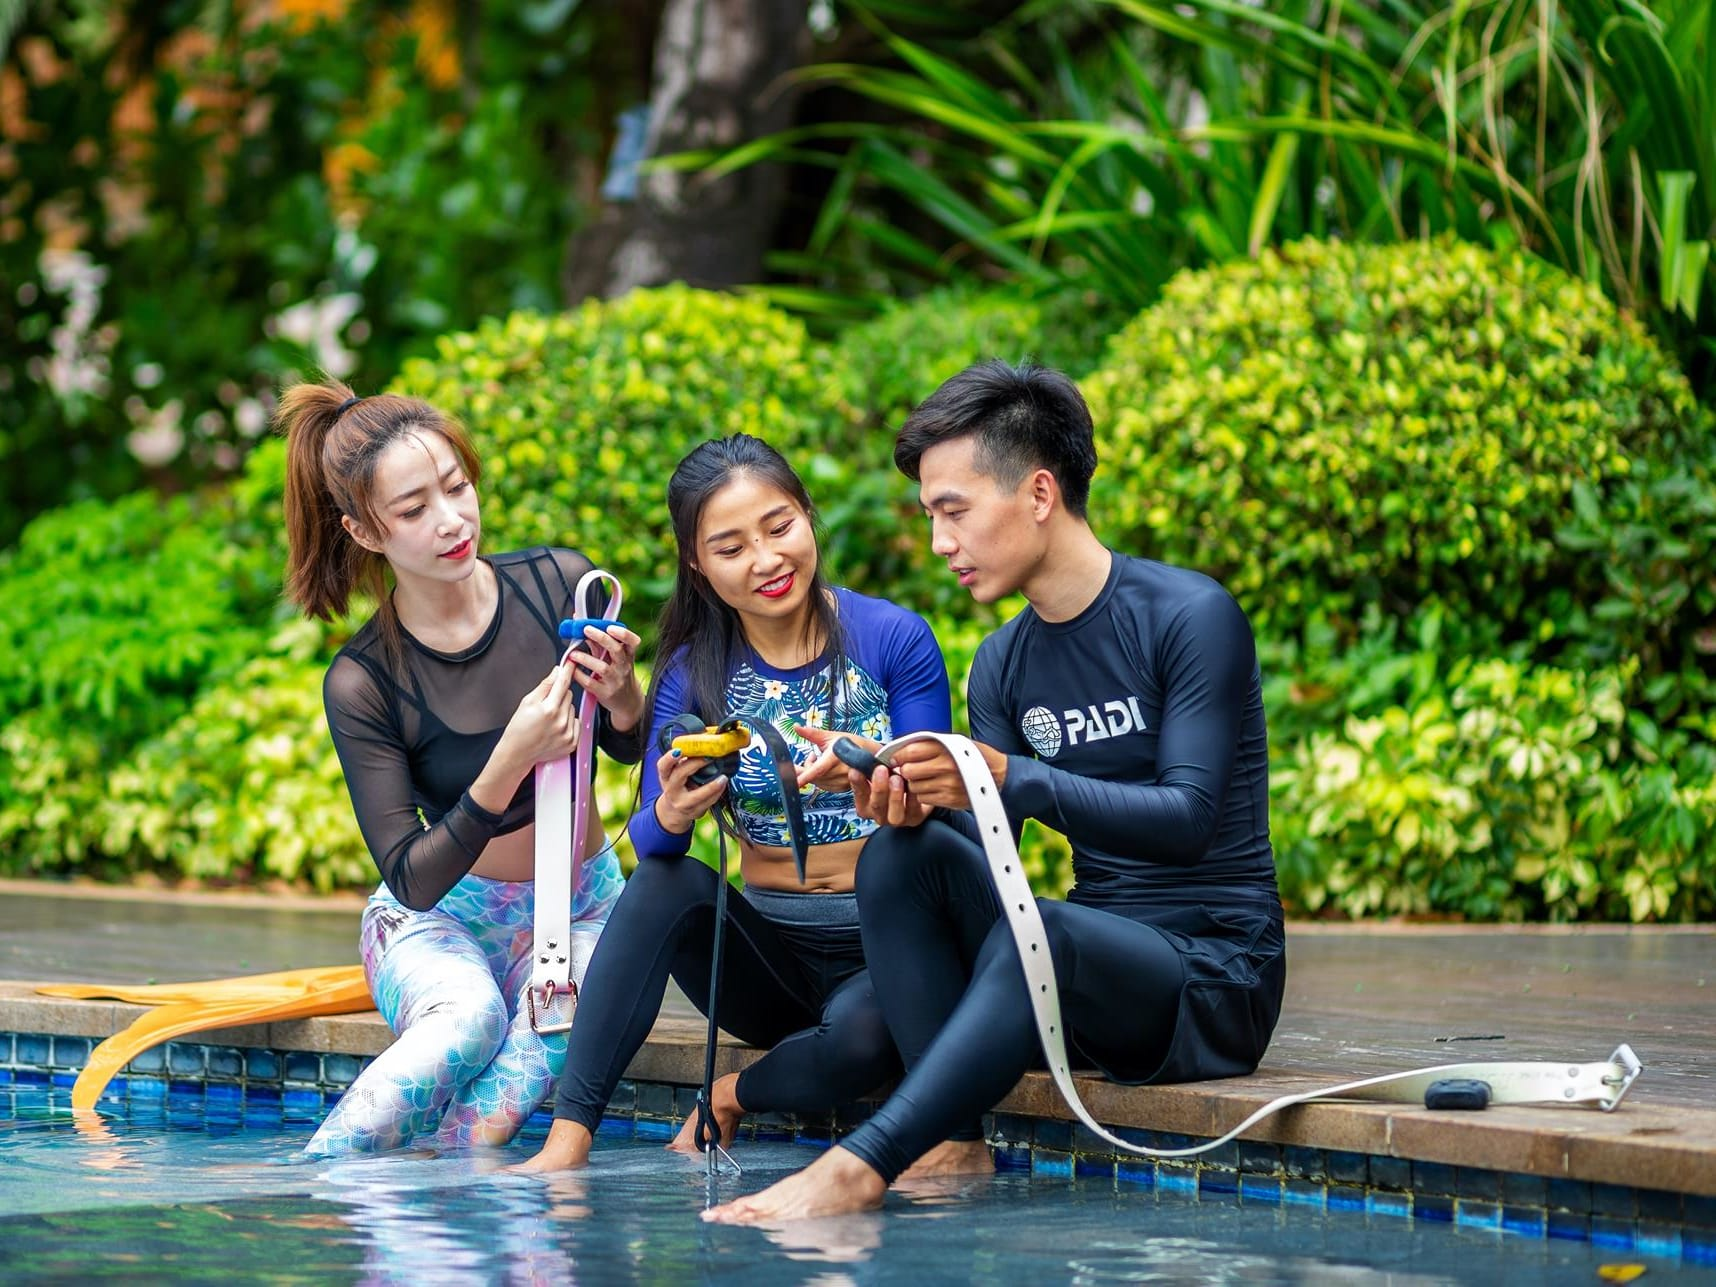 Divers by pool with mermaid diver